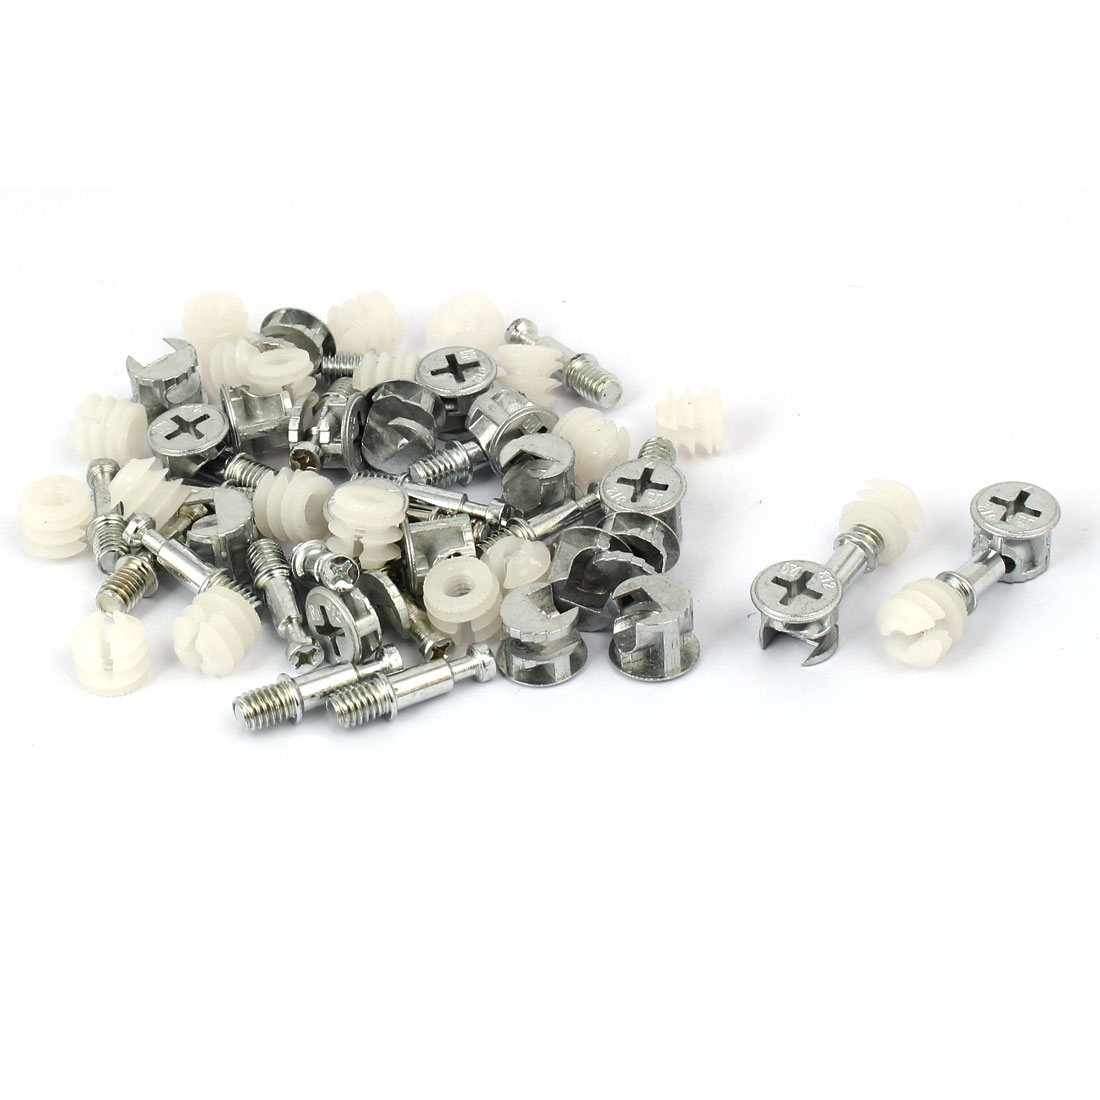 20 Sets Furniture Connecting Fitting Knock Down Furniture Cam LOCK Connecting Fitting Dowel Nut Assembly Cam Fitting/dowel/nut